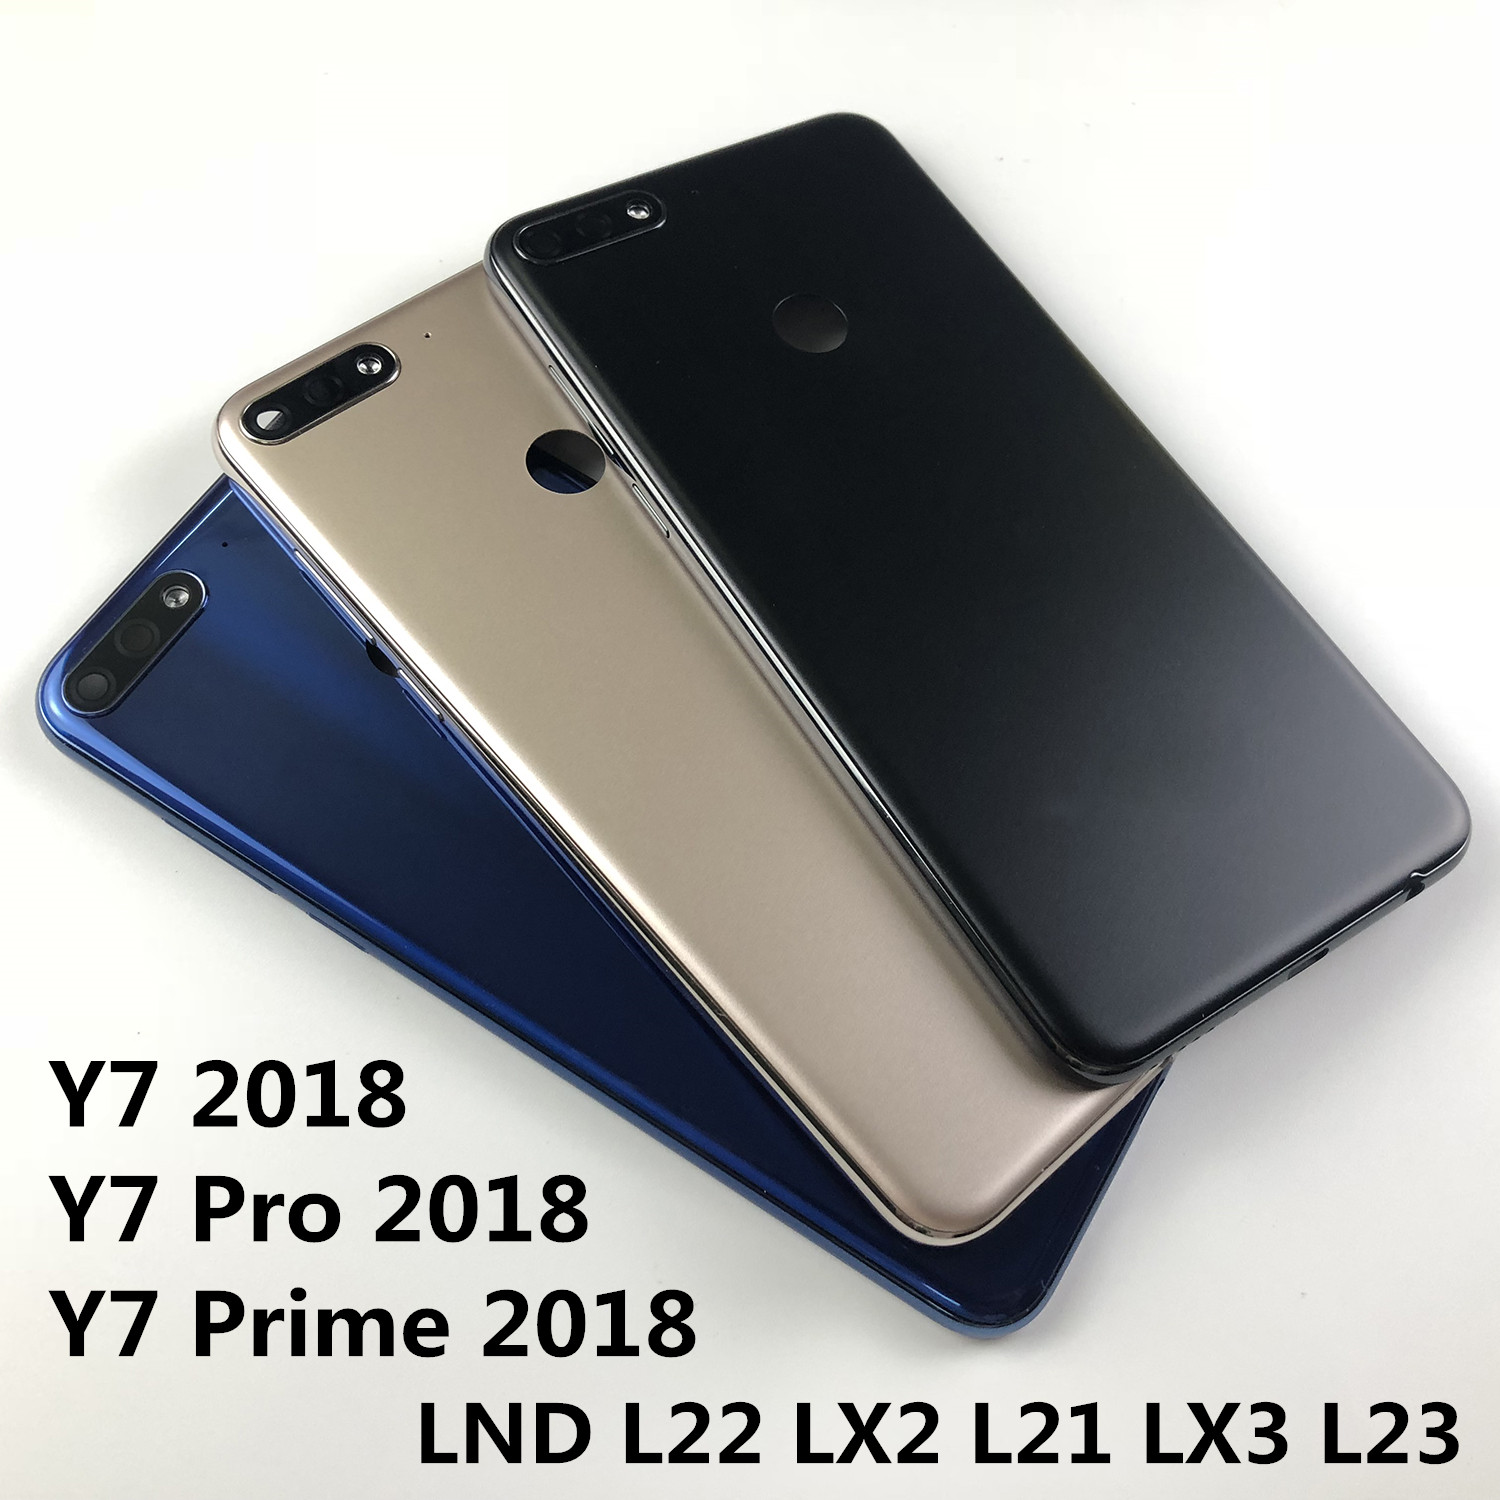 For Huawei Y7 2018/Y7 Pro 2018/Y7 Prime 2018 Housing Battery Cover Back Cover+rear Camera Glass Lens+Power Volume Buttons+logo